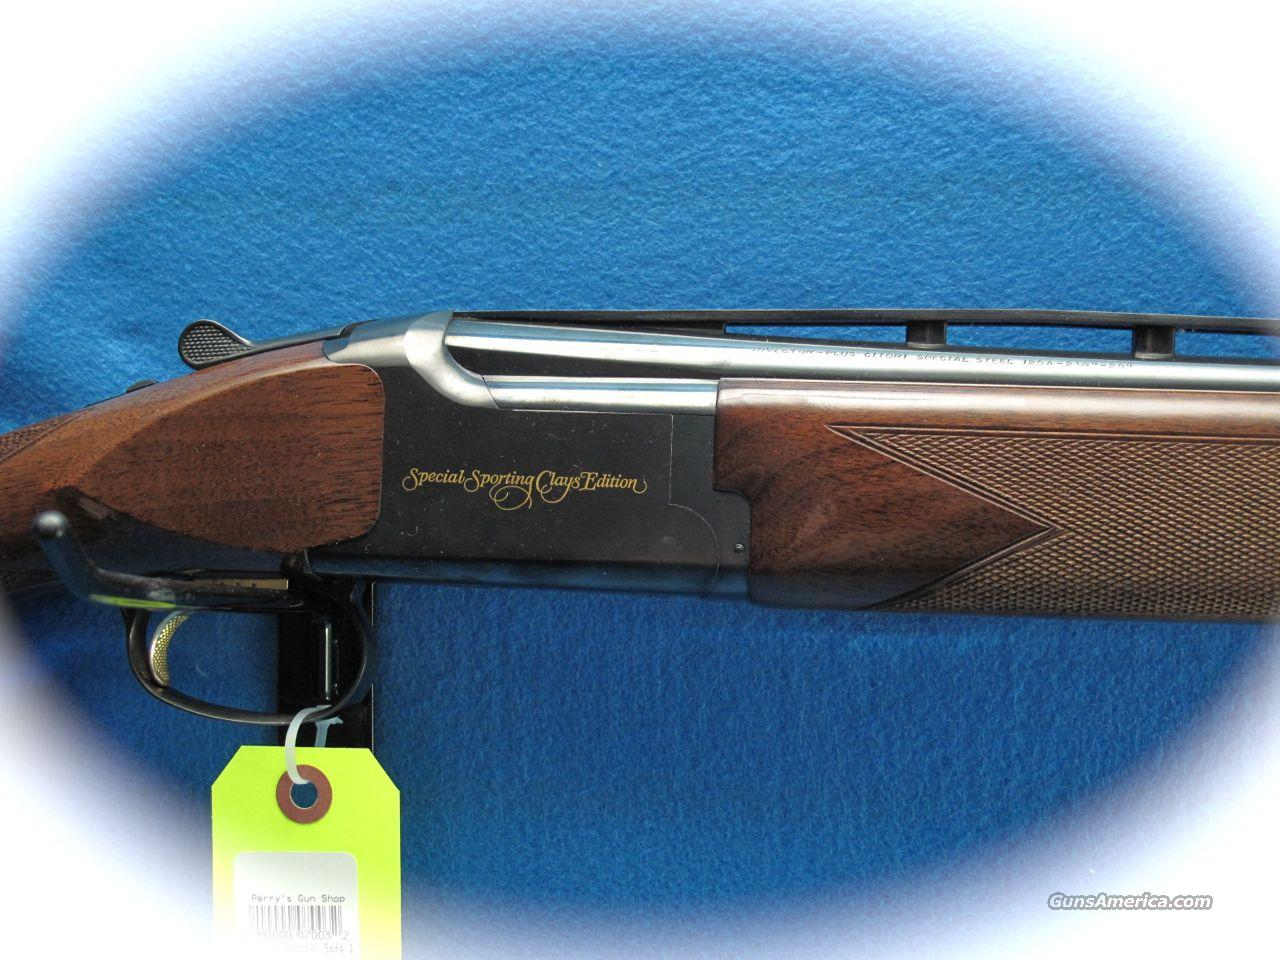 Browning citori special sporting clays edition 12 ga over under